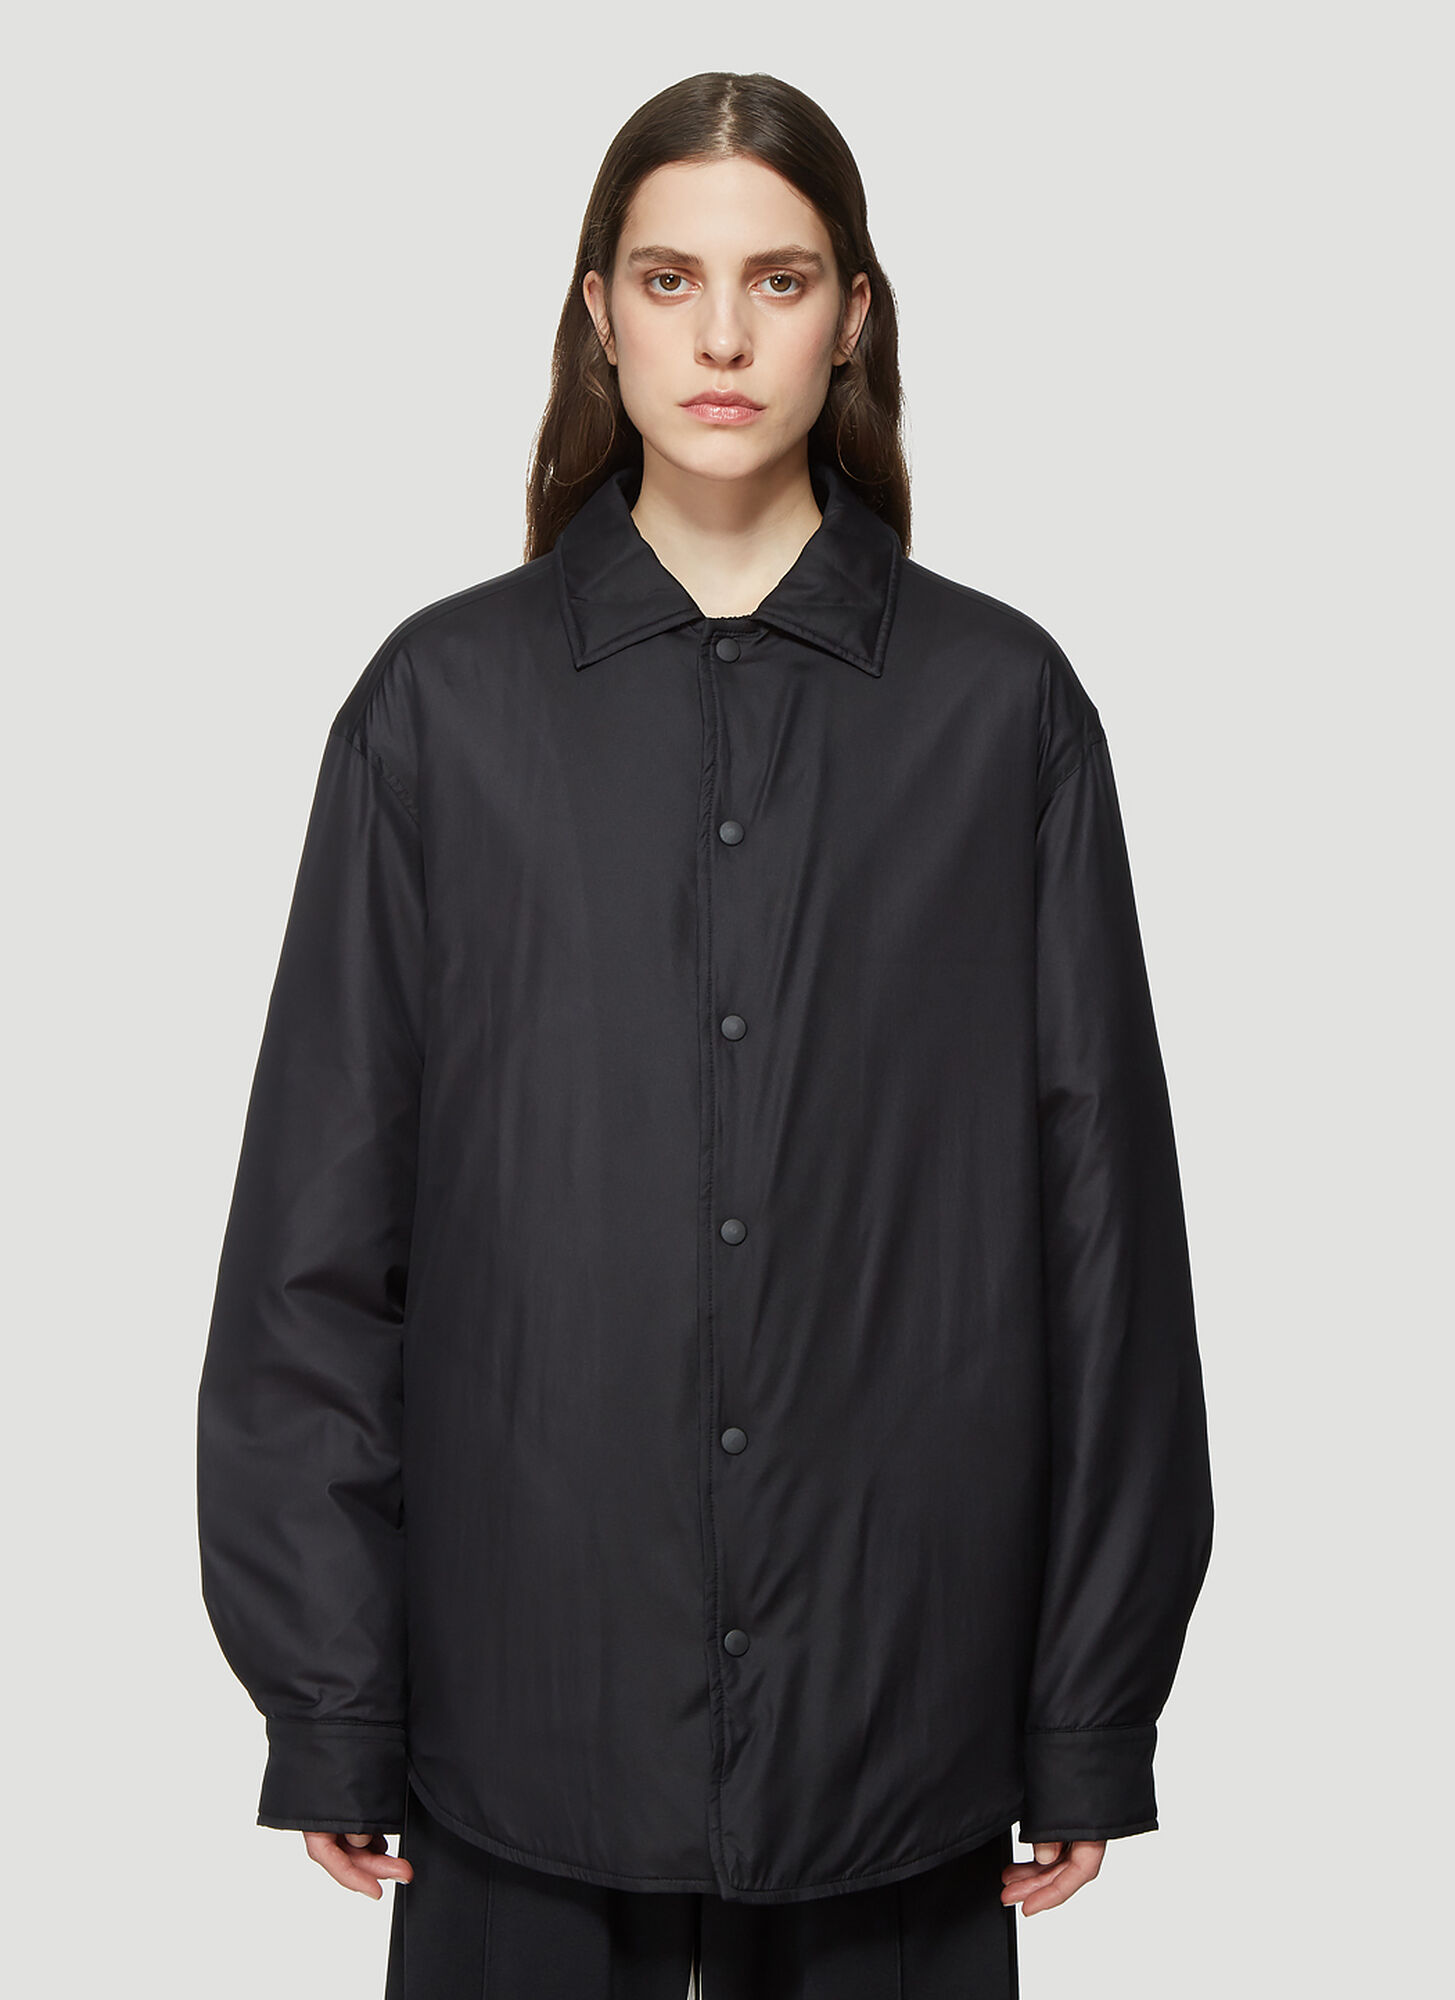 Y-3 Adizero Padded Jacket in Black